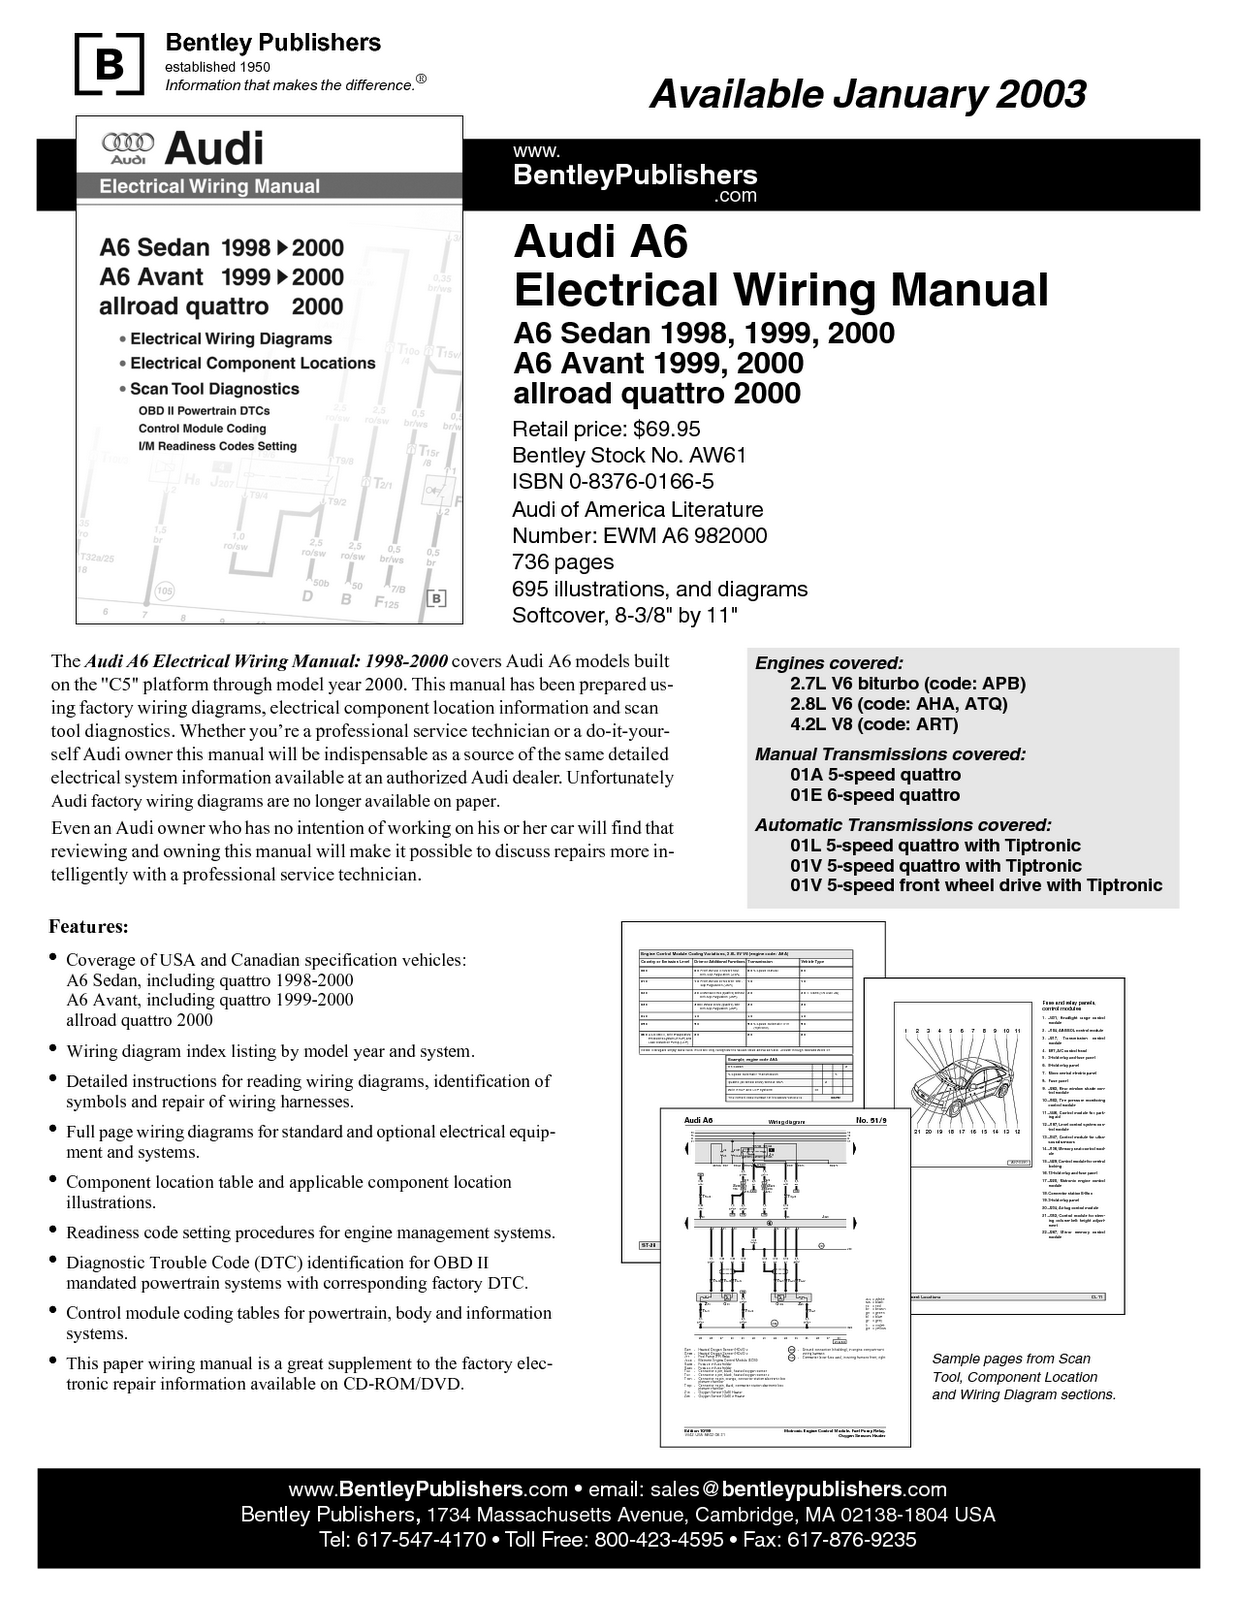 Diagram 1998 200audi A6 Wiring Diagram Manual Full Version Hd Quality Diagram Manual Heywiringl Wecsrl It